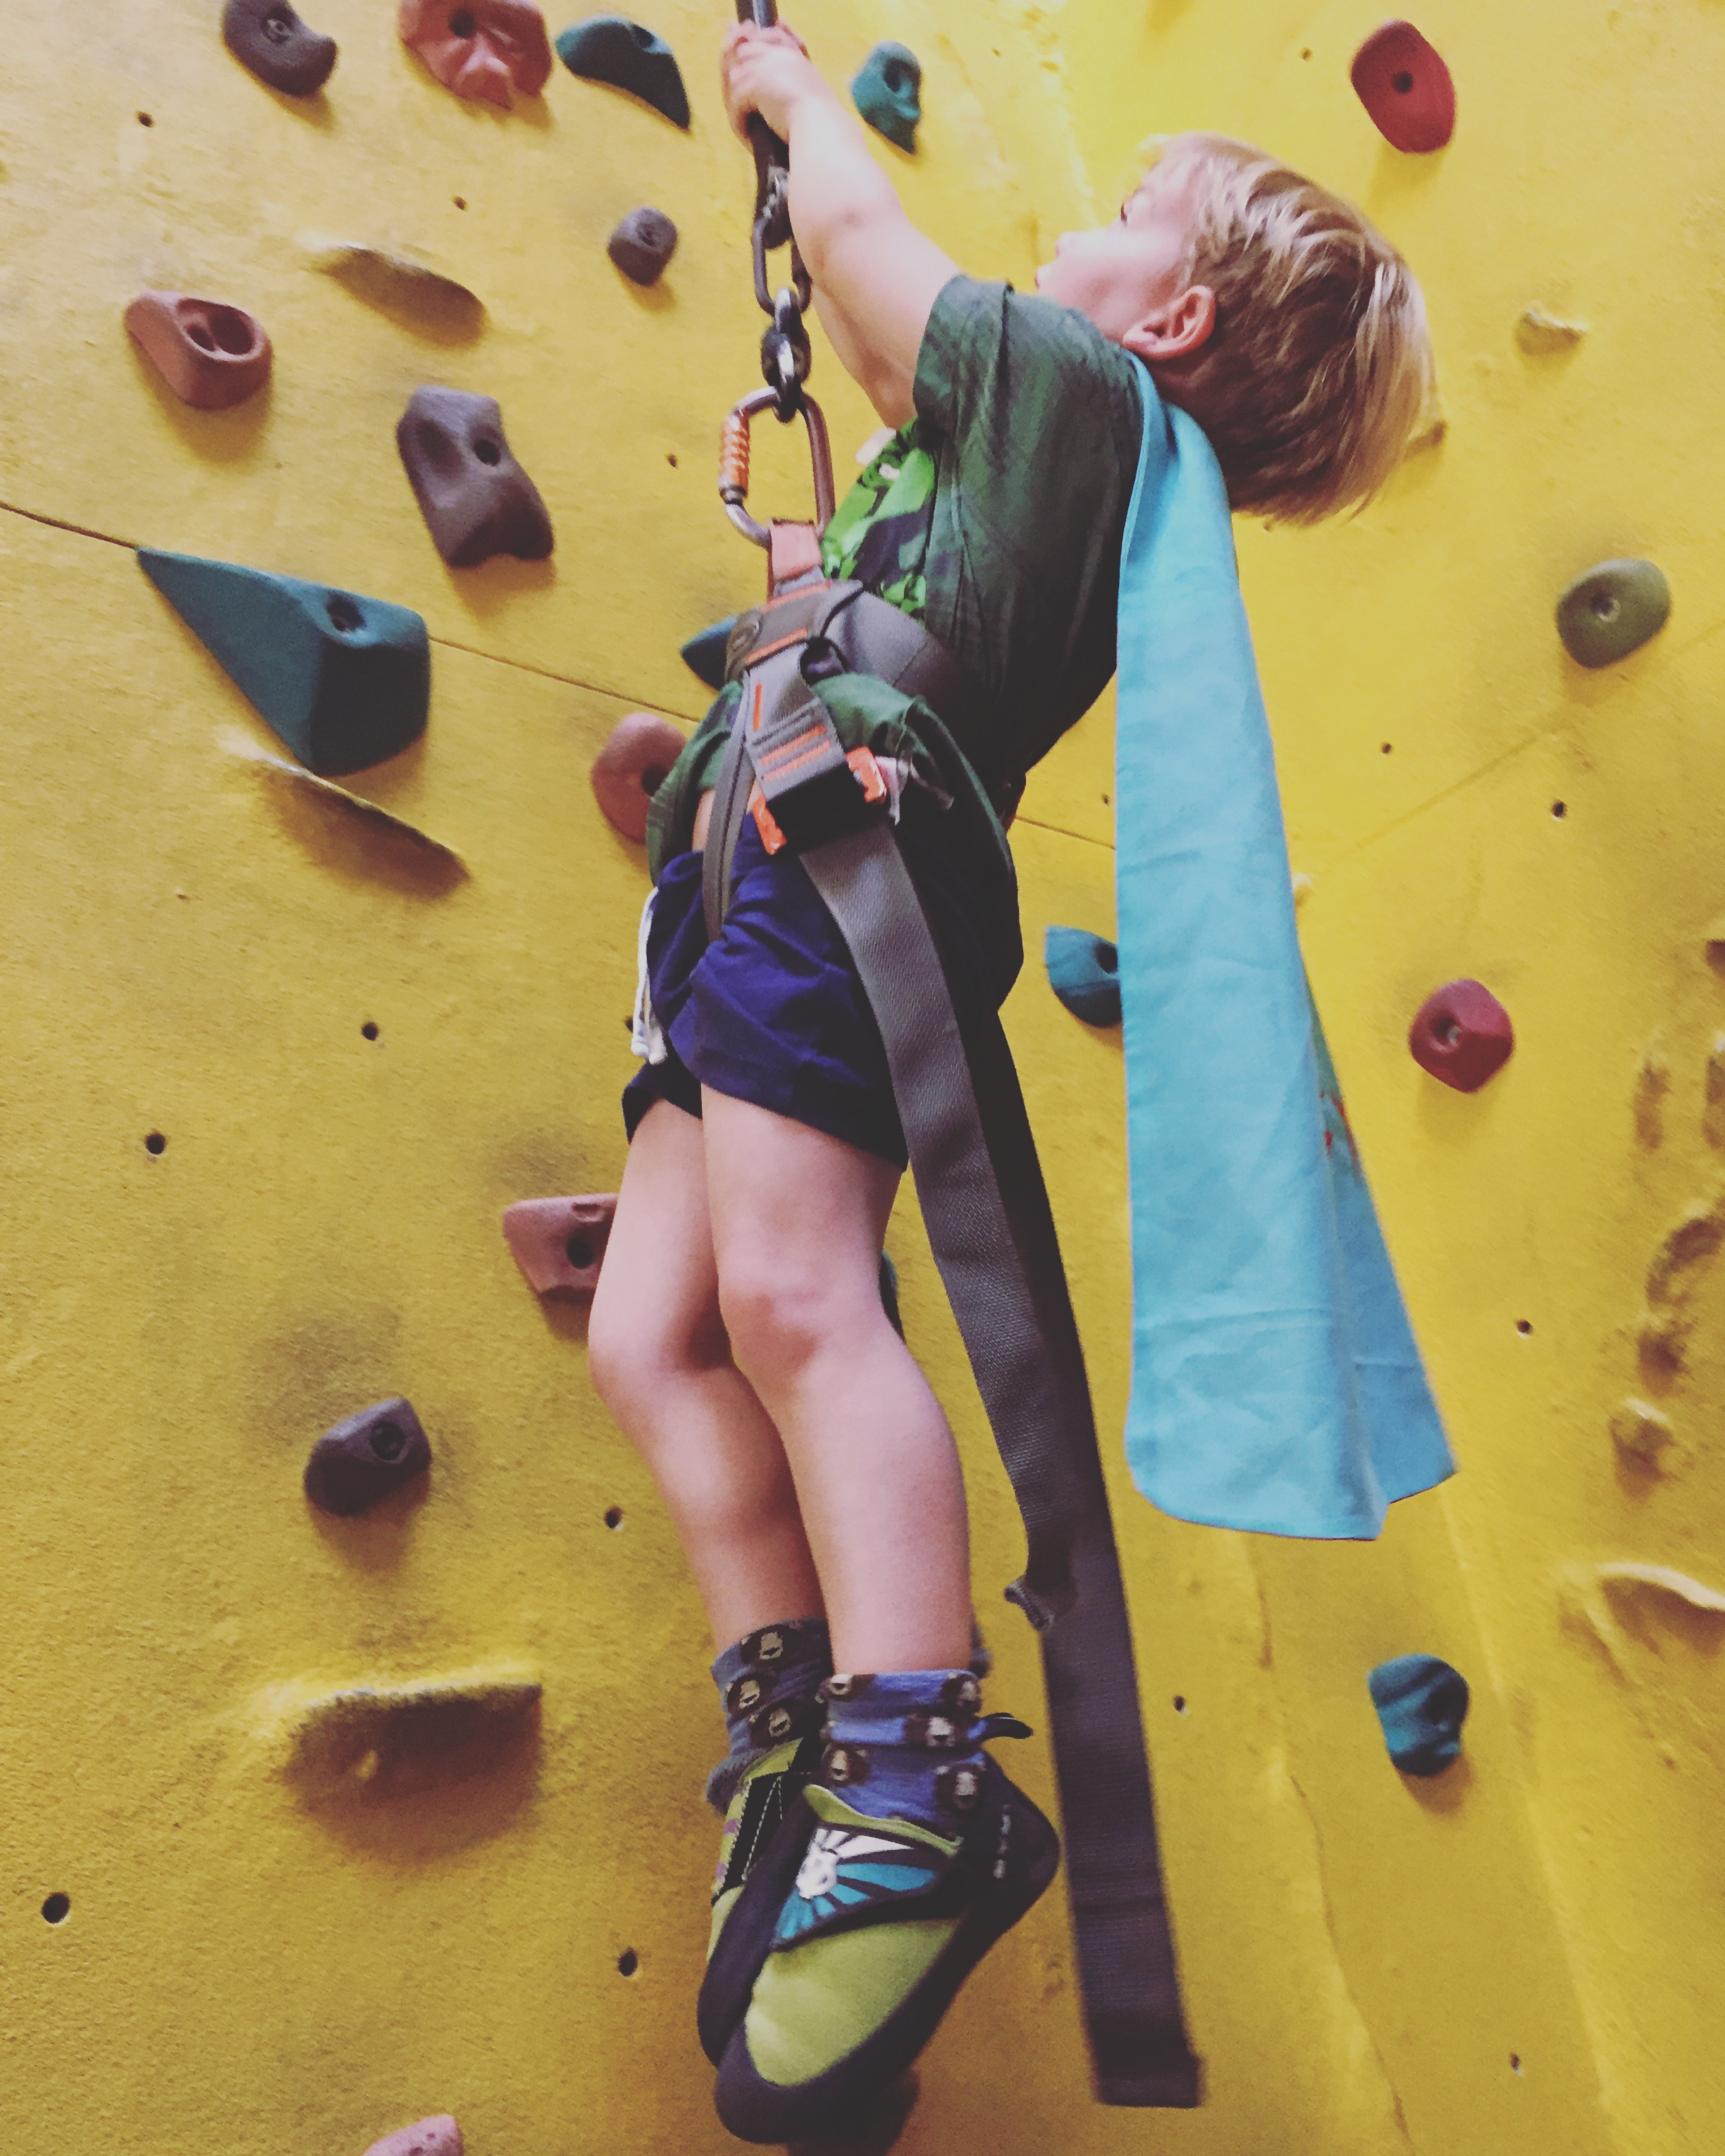 Climbing playgroup – a review